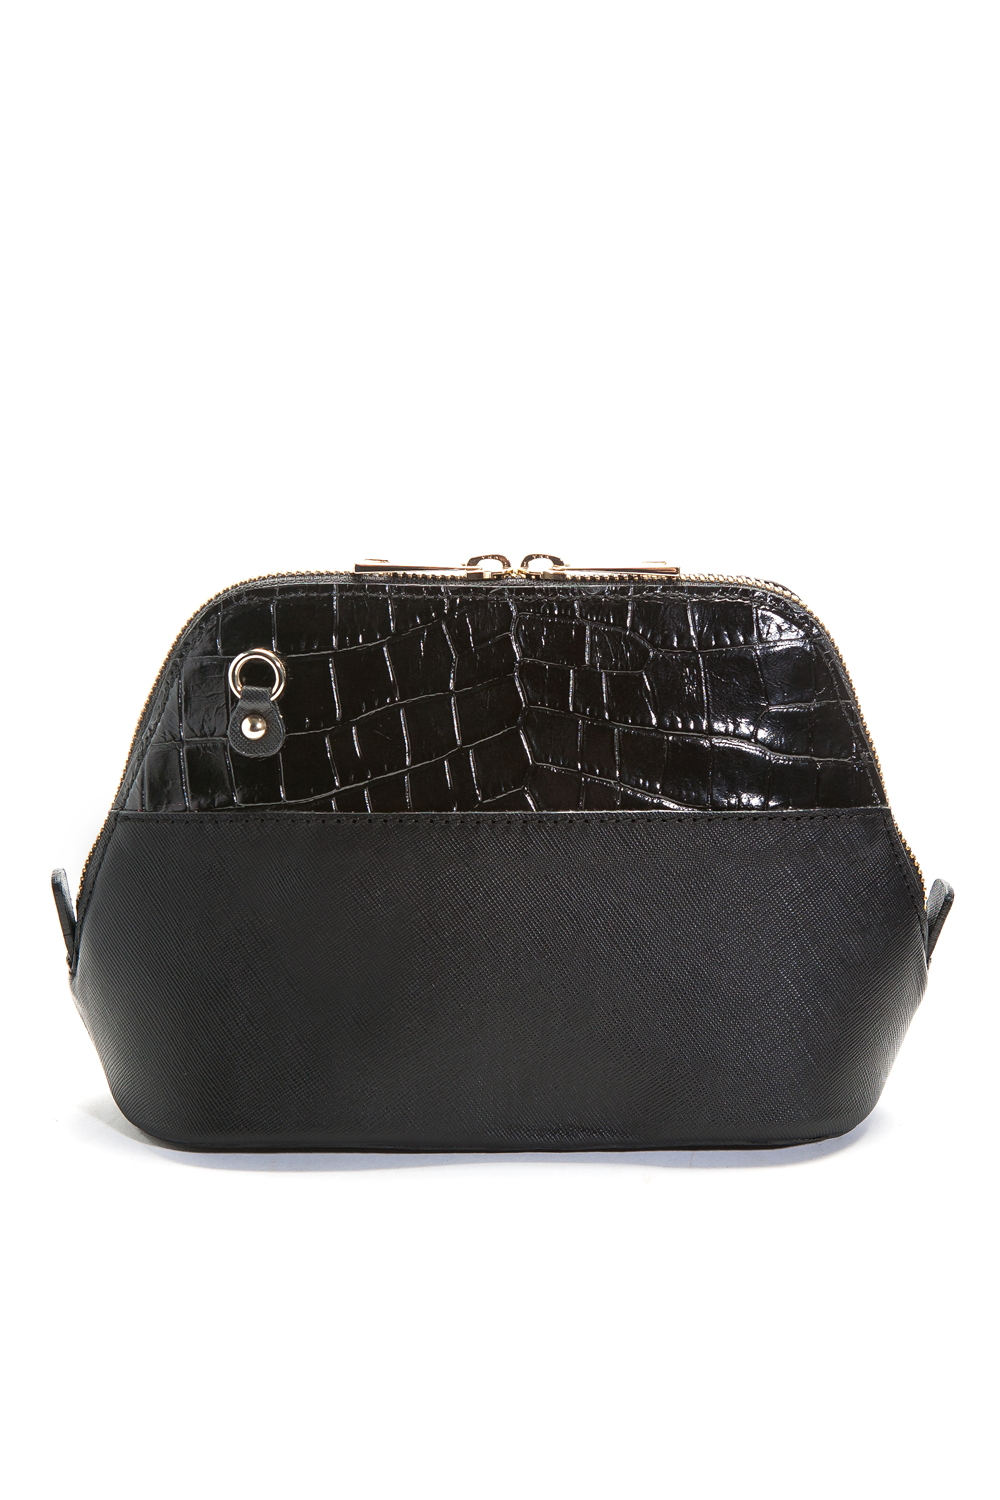 Mel Boteri 'Watson Mini' Cross-Body & Clutch Black Leather Bag | Back View